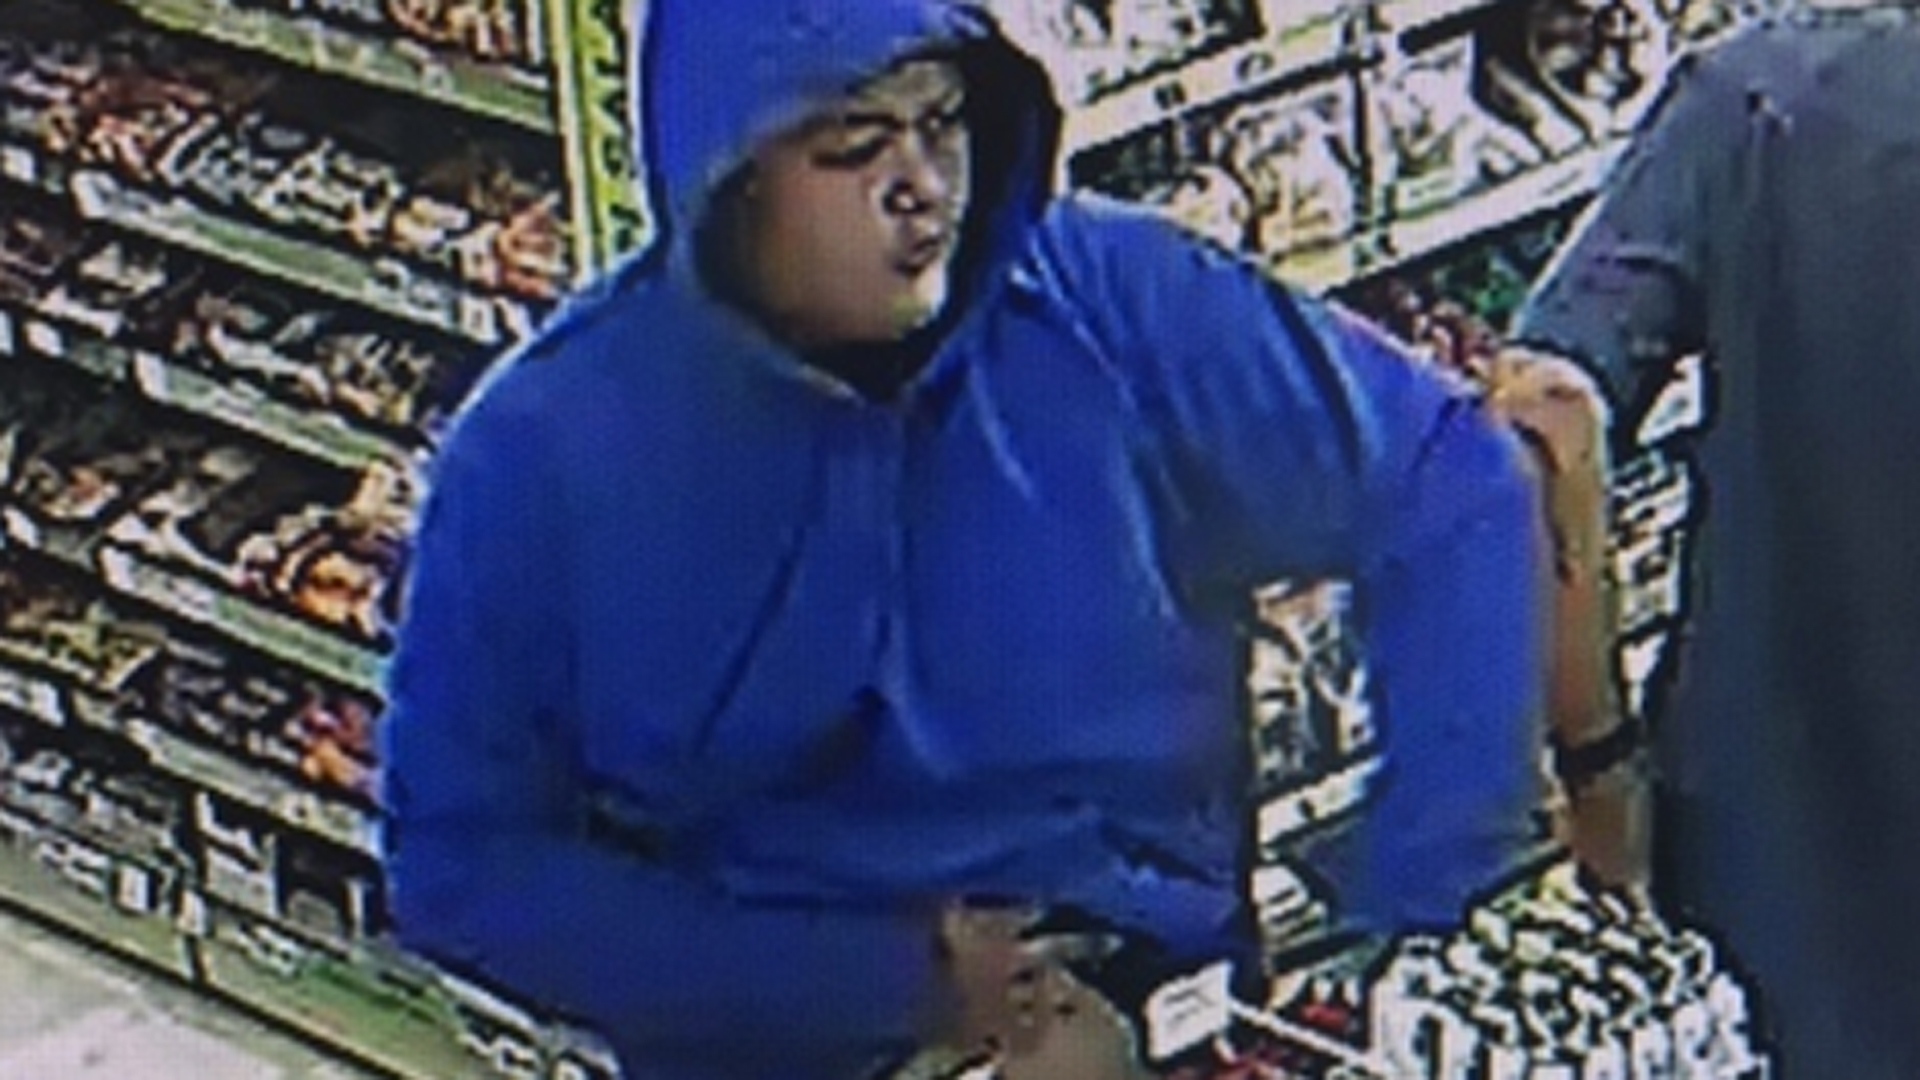 Police in Whittier are asking for help identifying this man.